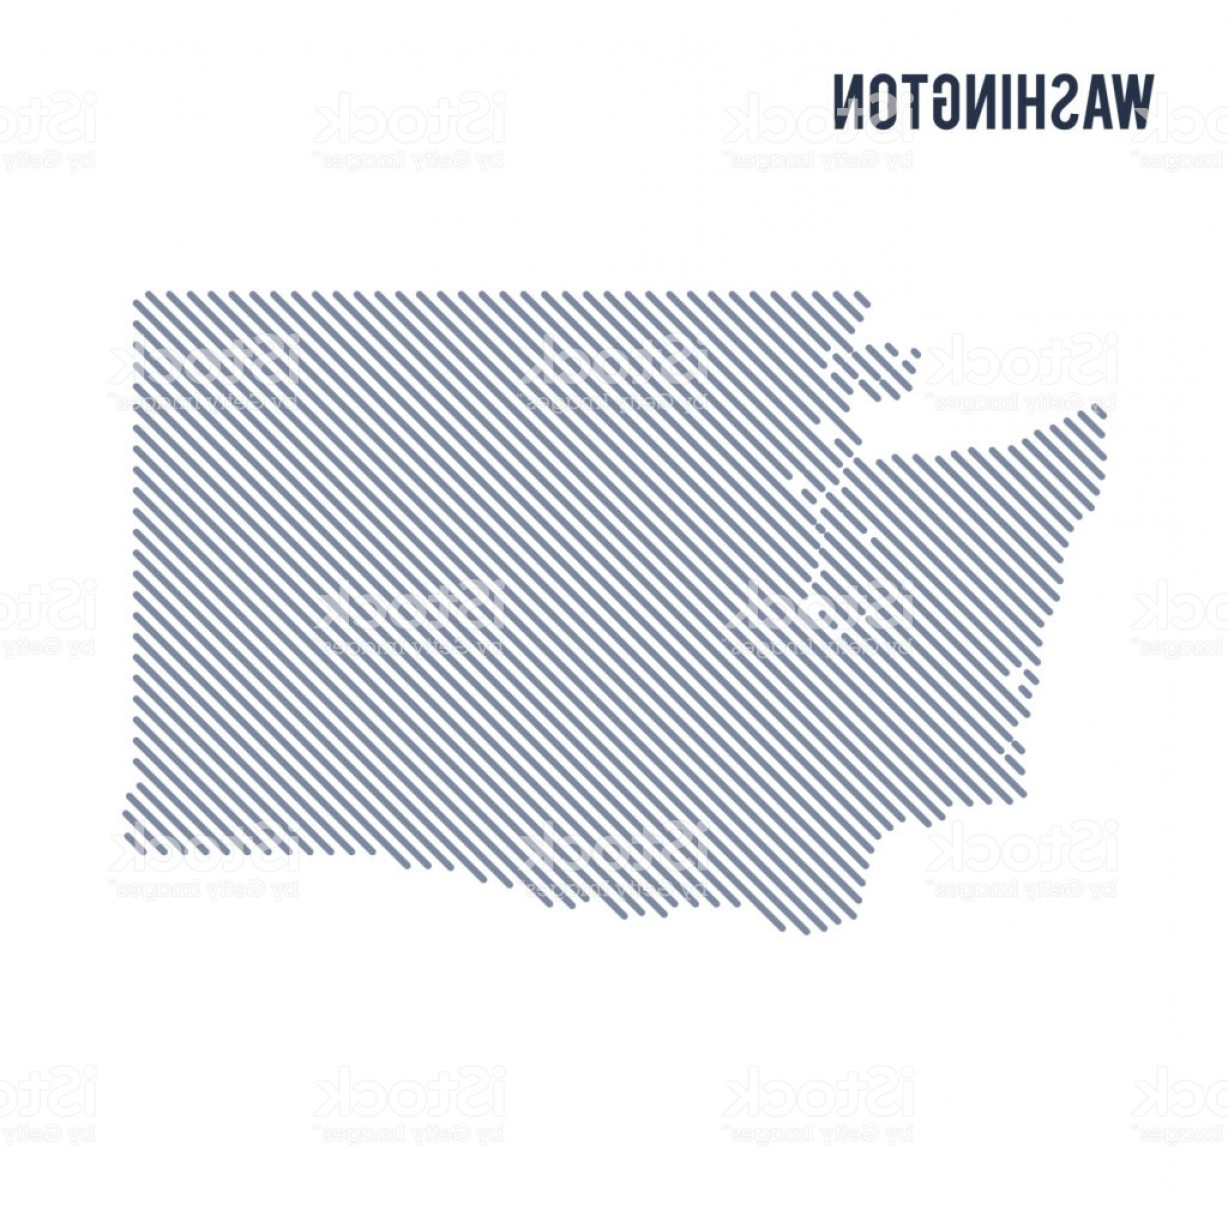 Washington State Vector: Vector Abstract Hatched Map Of State Of Washington With Oblique Lines Isolated On A Gm